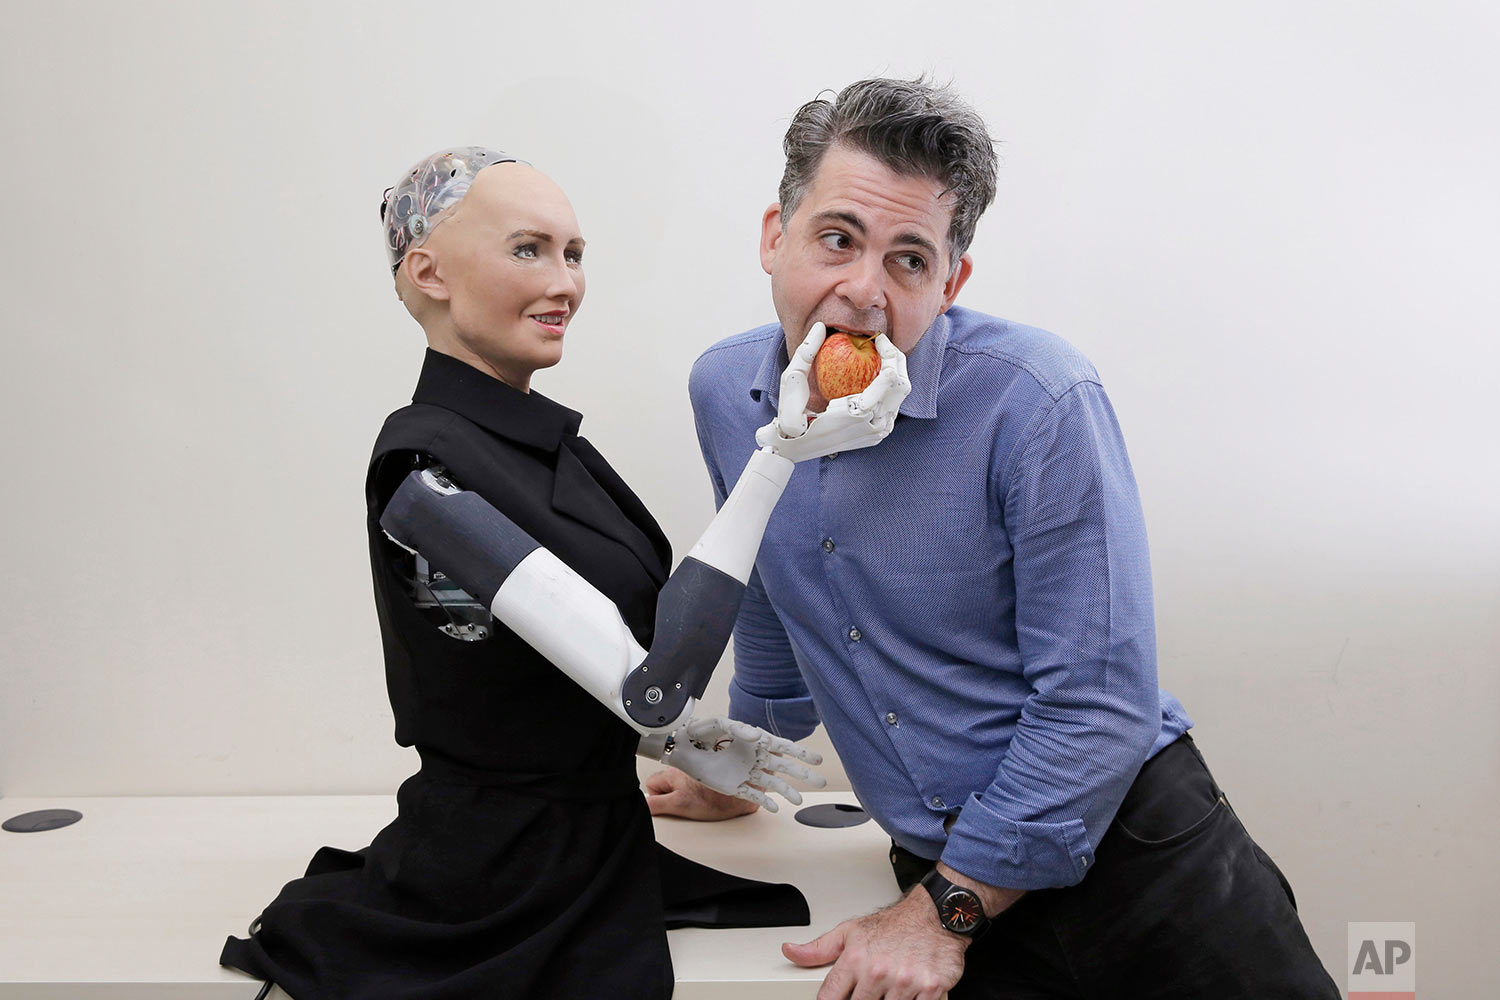 In this Sept. 28, 2017, photo, David Hanson, the founder of Hanson Robotics, poses with his company's flagship robot Sophia, a lifelike robot powered by artificial intelligence in Hong Kong. (AP Photo/Kin Cheung) |  See these photos on AP Images